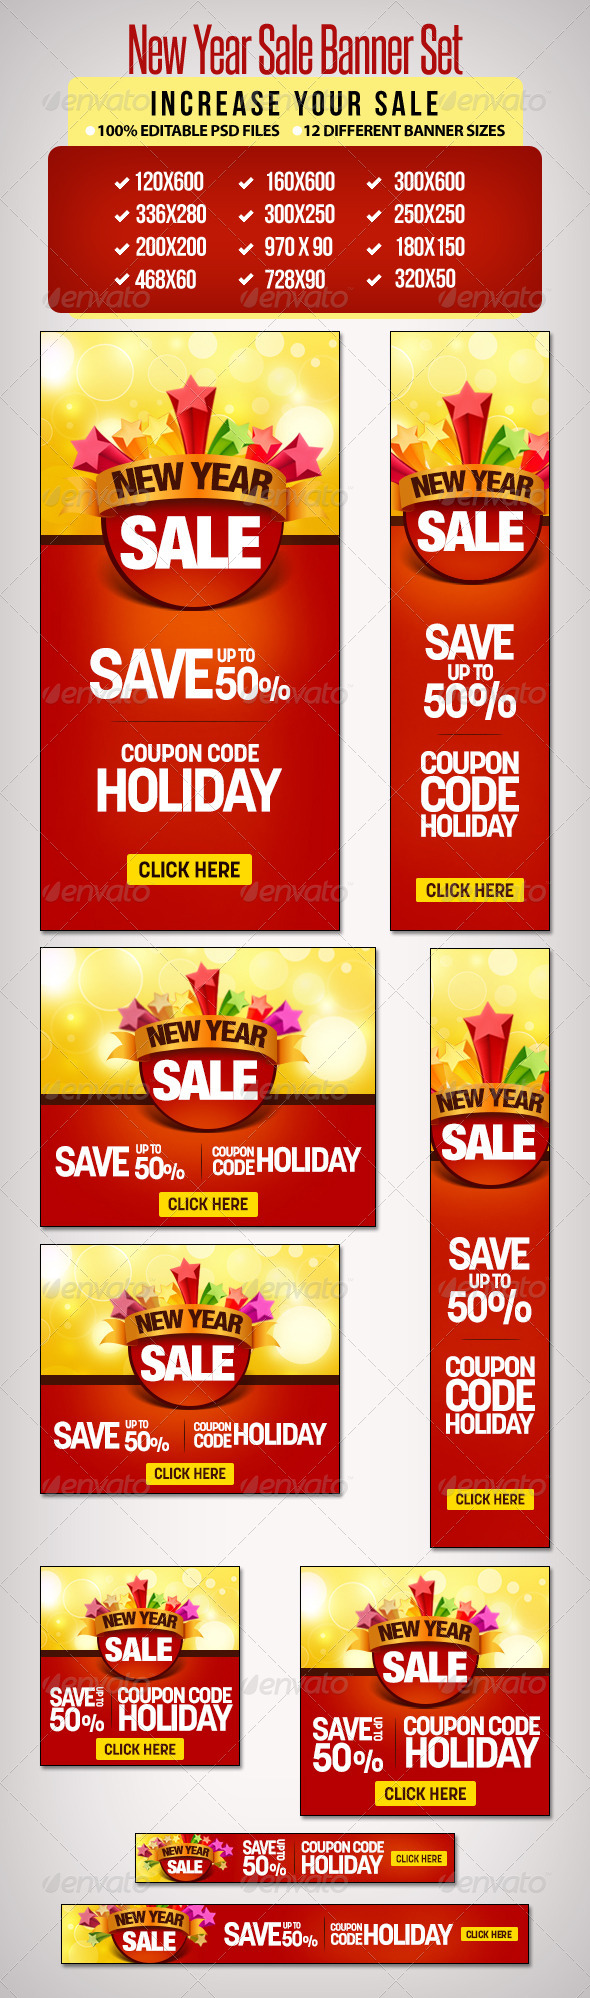 GraphicRiver New Year Sale Banner Set 2 12 Sizes 6511275